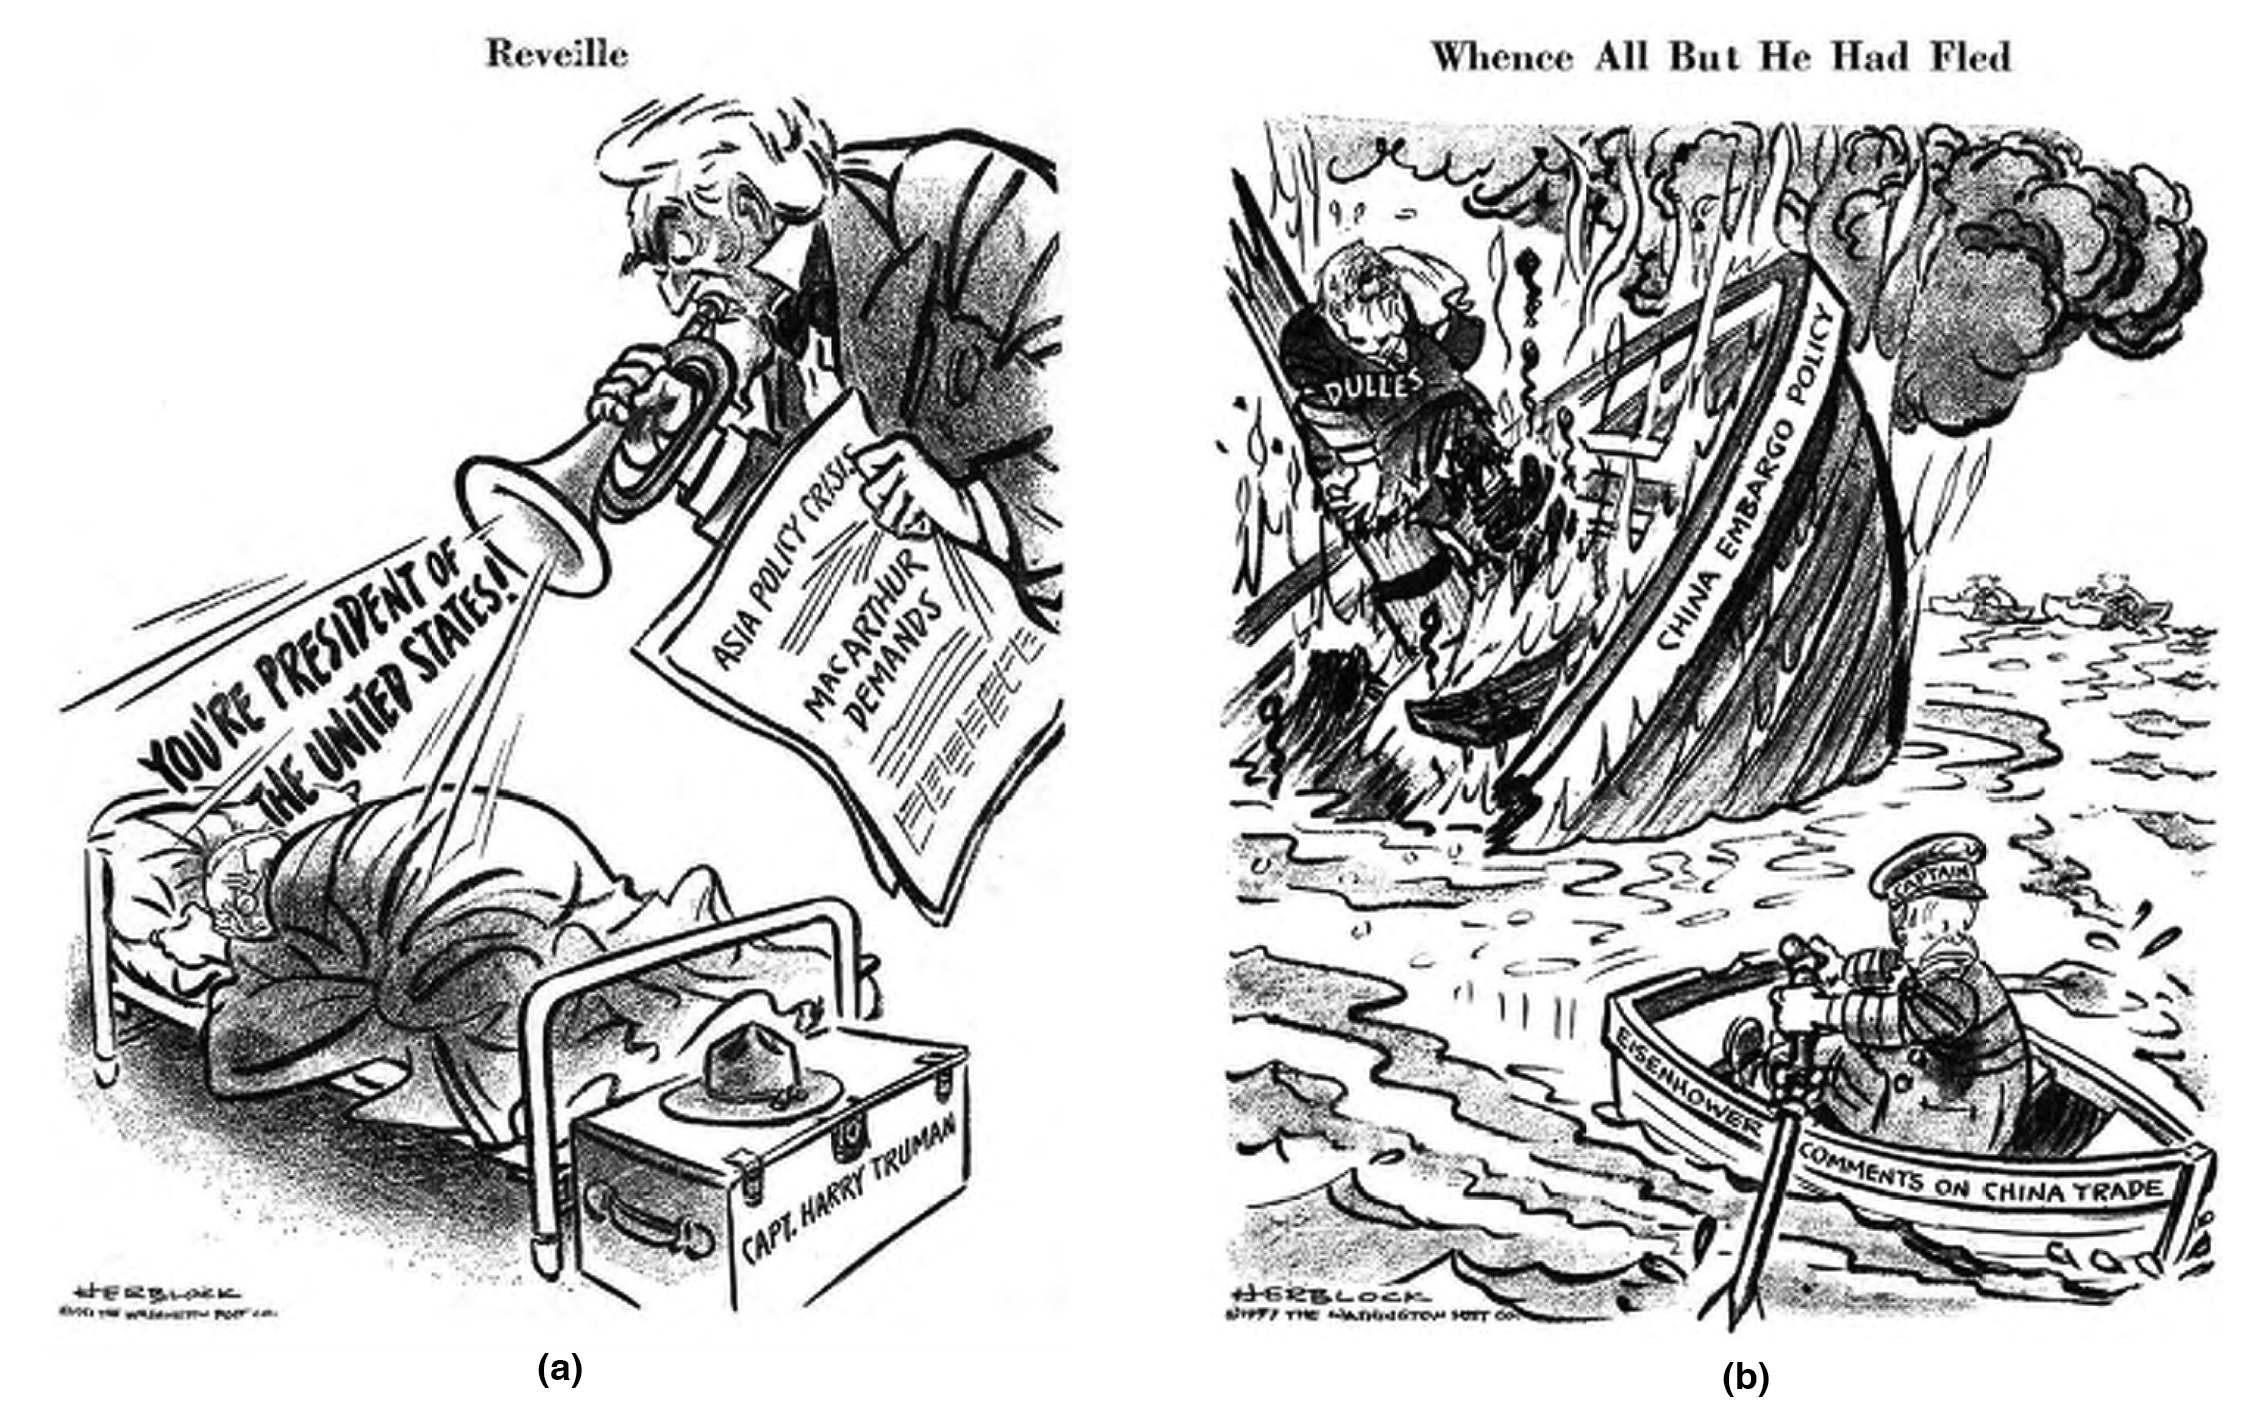 """Two Herblock cartoons. Cartoon A shows a man blowing a trumpet with the words """"You're president of the United States"""" coming out of it next to a sleeping Harry Truman. Cartoon B depicts a ship labeled """"China Embargo Policy"""" sinking with a person on it while a second person rows away in a smaller boat labeled """"Eisenhower Comments on China Trade."""""""